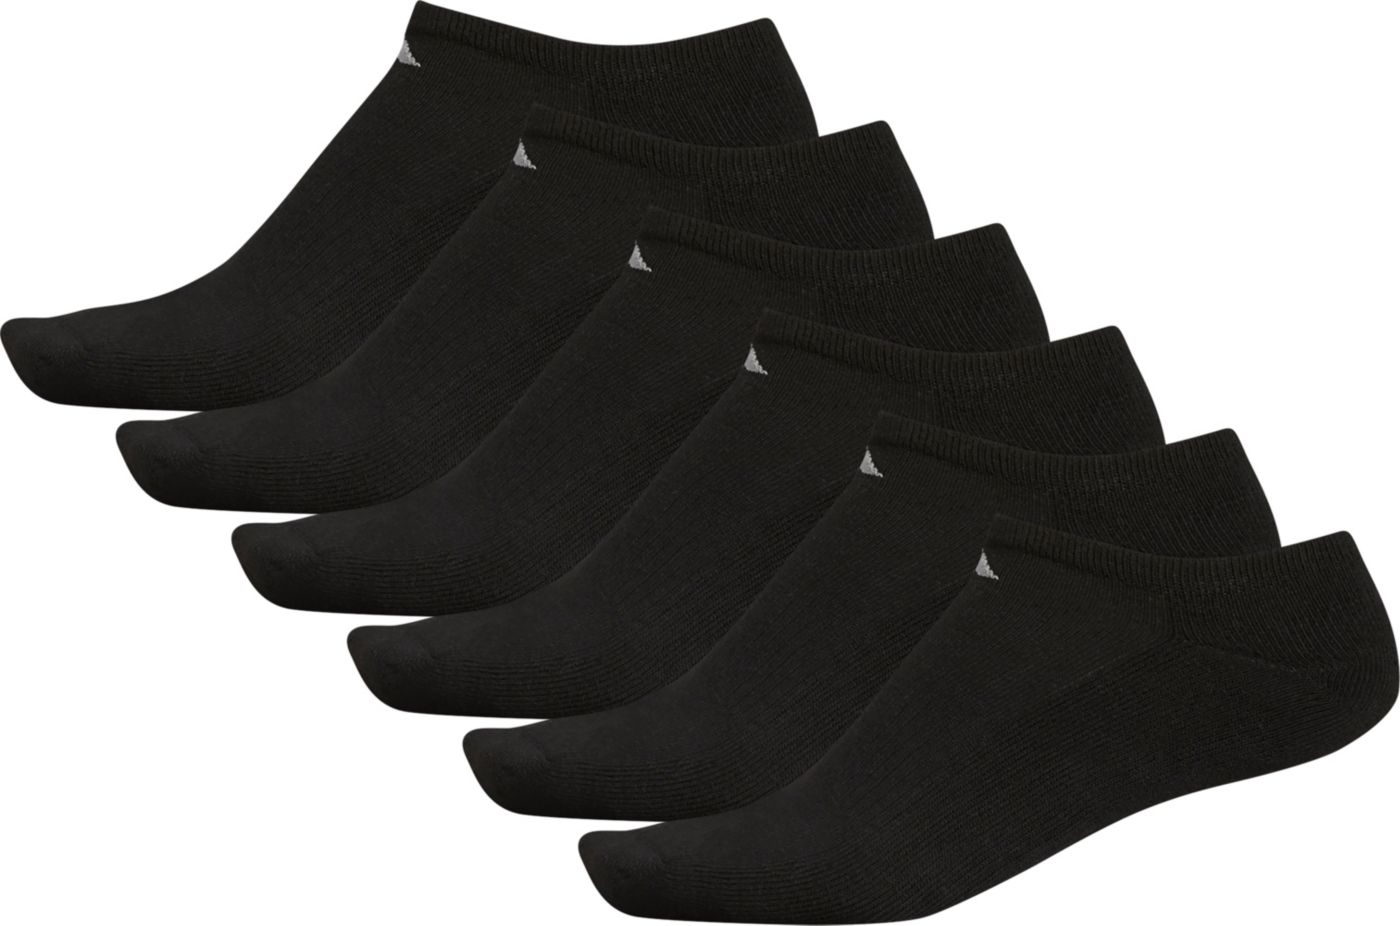 adidas Men's Athletic No Show Socks - 6 Pack